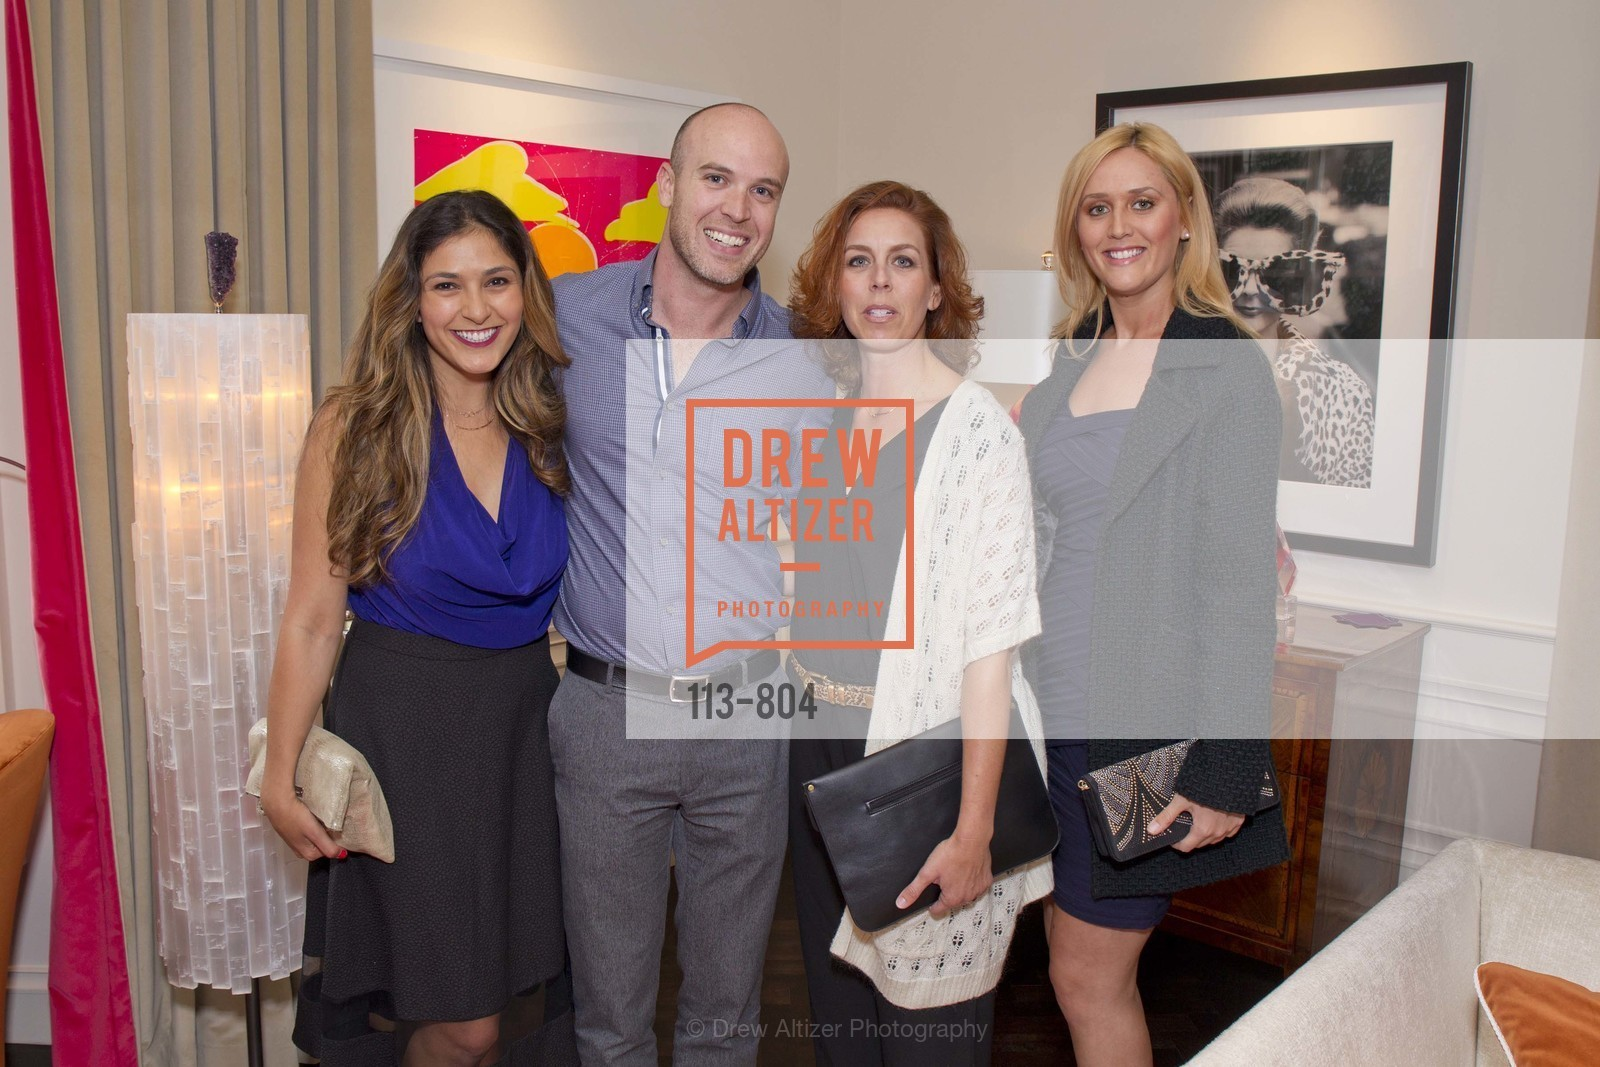 Kelsey Mazada, Chase Roberson, Phaedra Wilson, Jessica Barnard, San Francisco Decorator Showcase Opening Night Party, US, April 25th, 2015,Drew Altizer, Drew Altizer Photography, full-service agency, private events, San Francisco photographer, photographer california